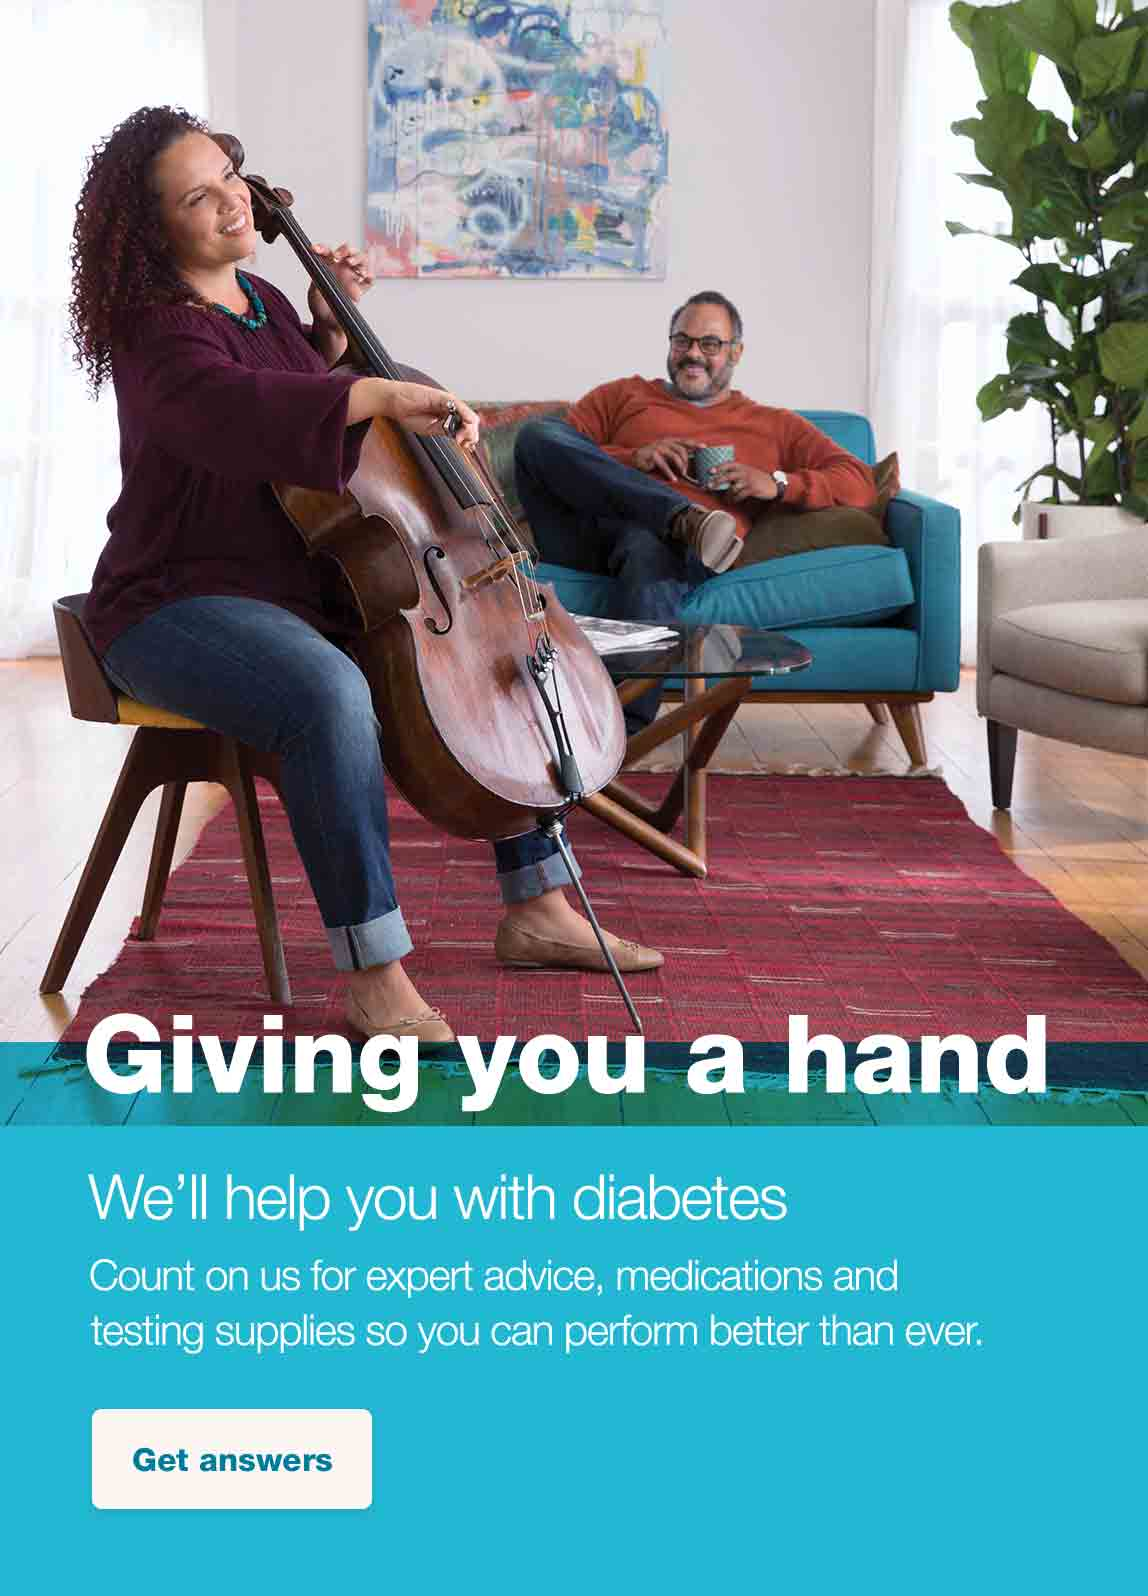 Giving you a hand. We'll help you with diabetes. Count on us for expert advice, medications and testing supplies so you can perform better than ever. Get answers.